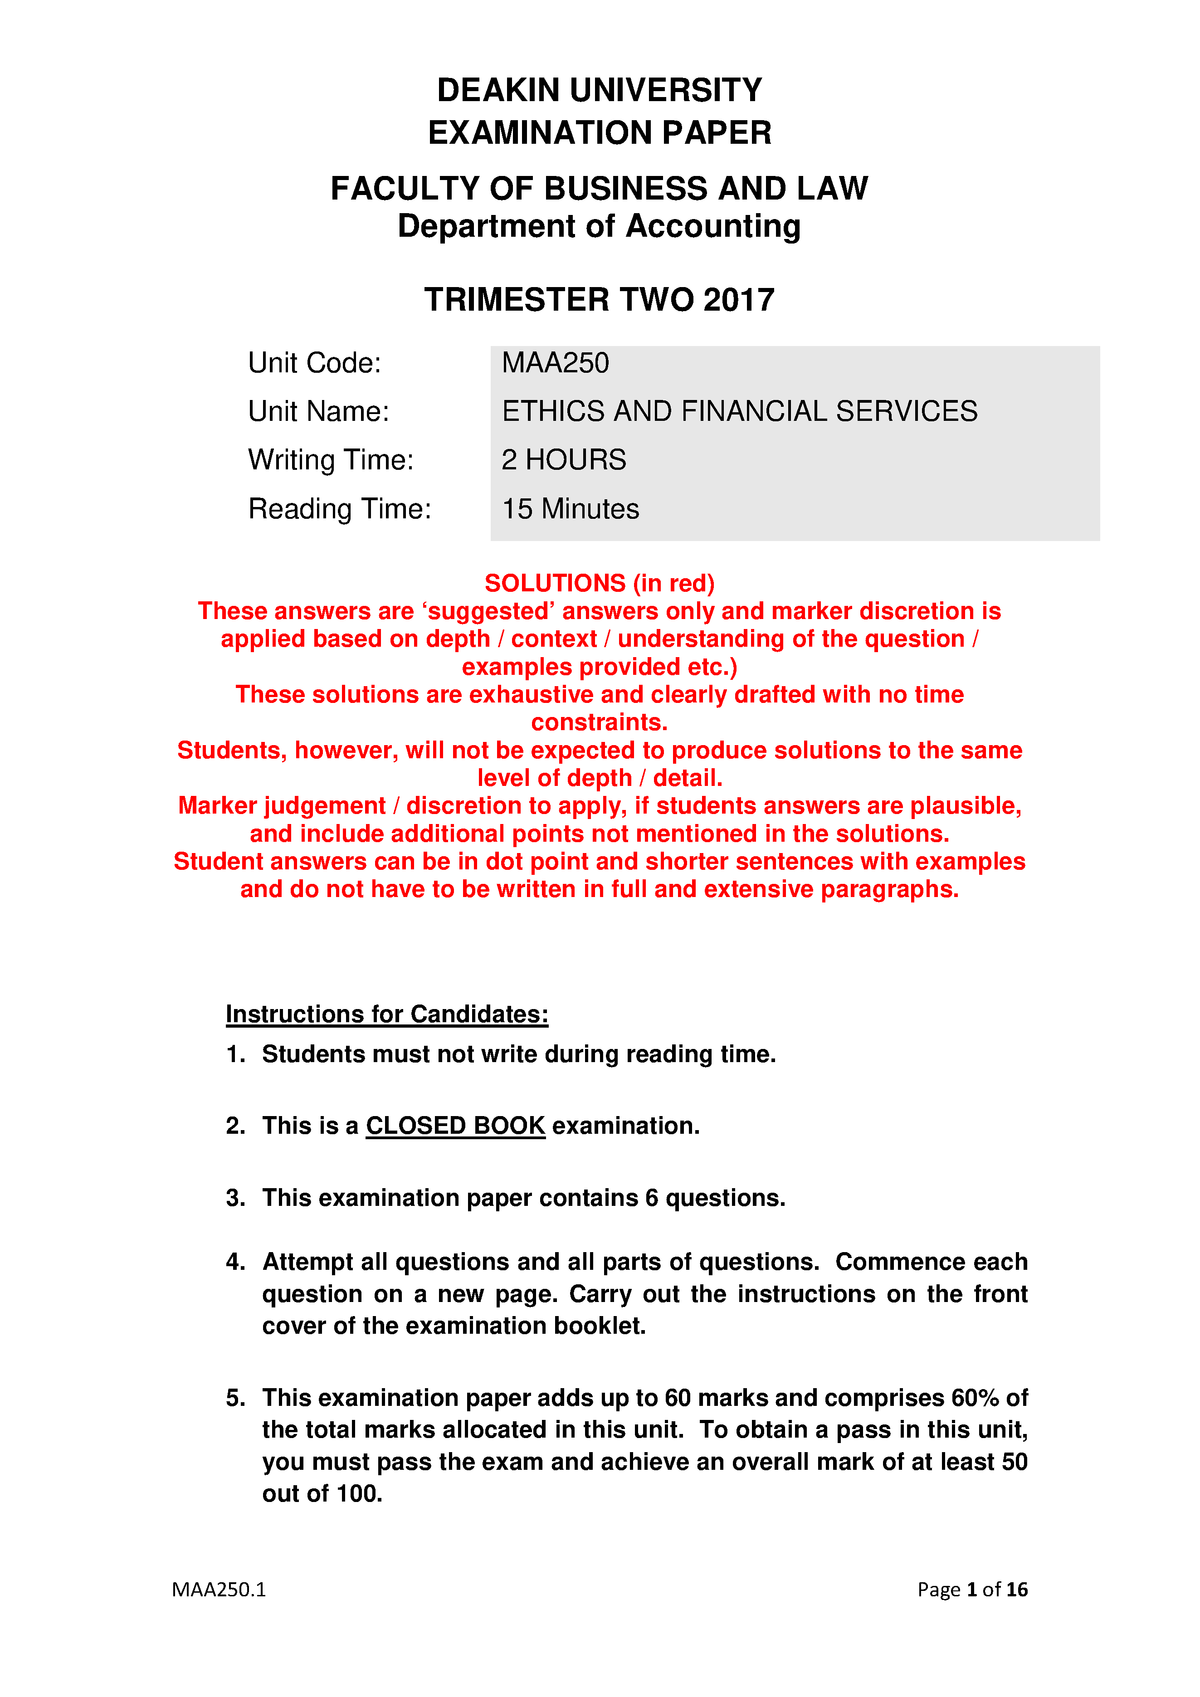 2017 T2 MAA250 Exam 1 solutions - M300 Bachelor of commerce